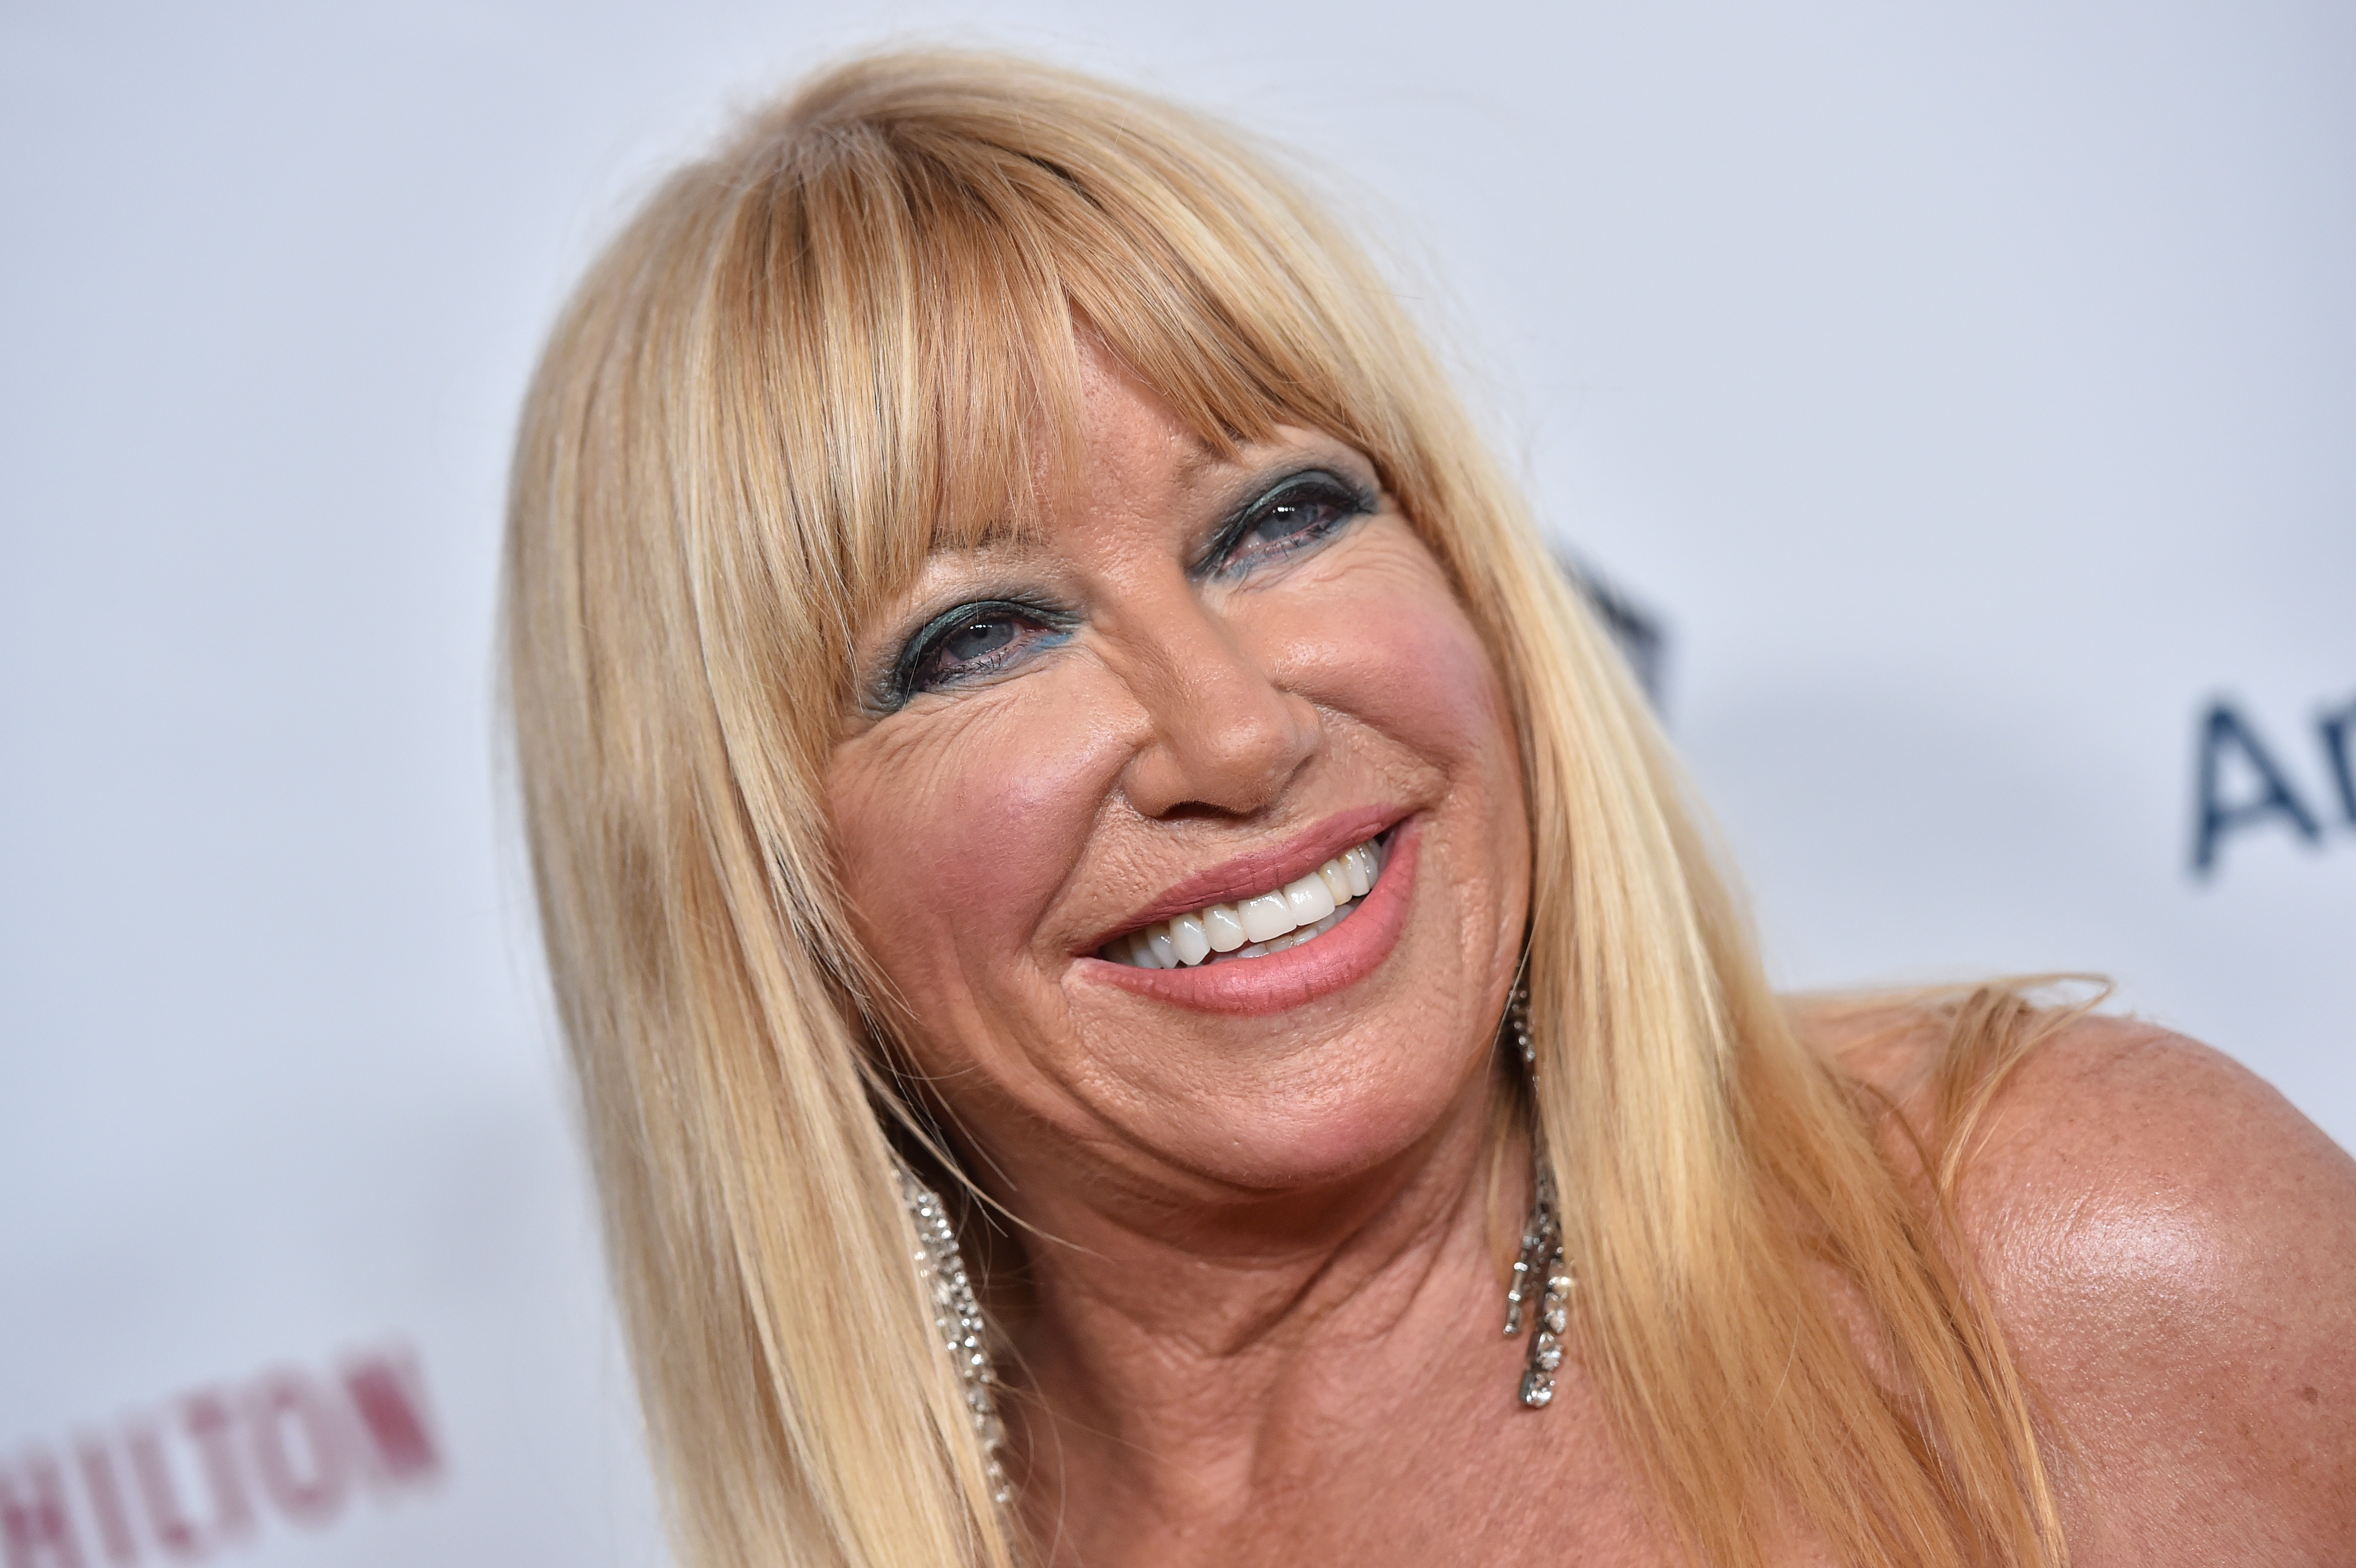 Suzanne Somers nudes (14 photos), Topless, Sideboobs, Boobs, swimsuit 2020